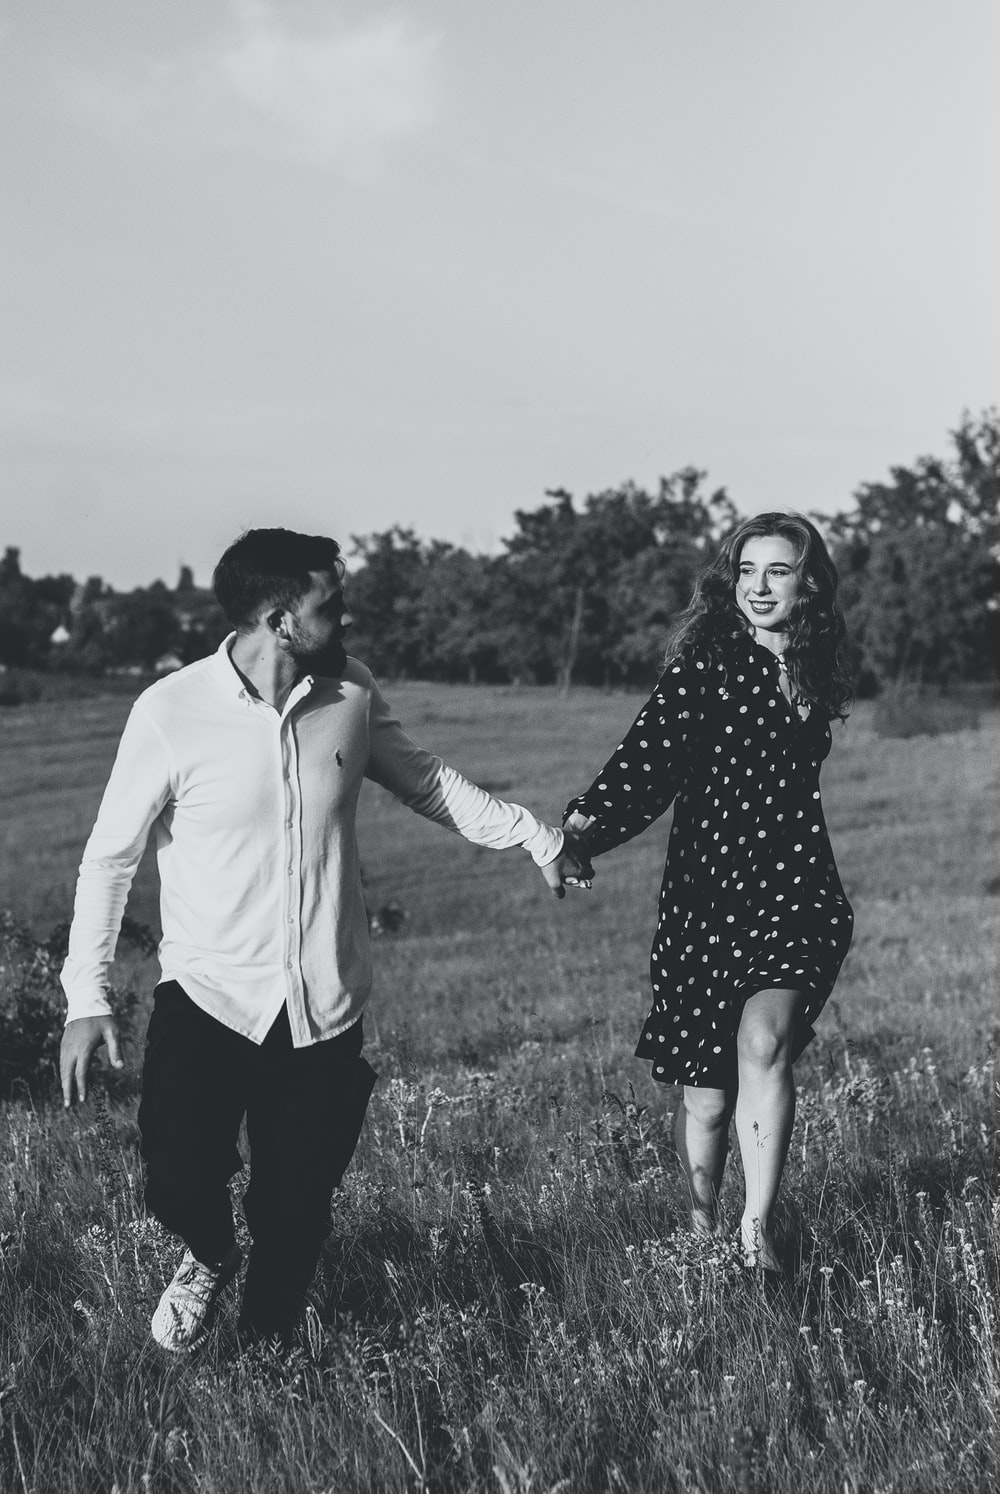 man and woman holding hands on grass field in grayscale photography